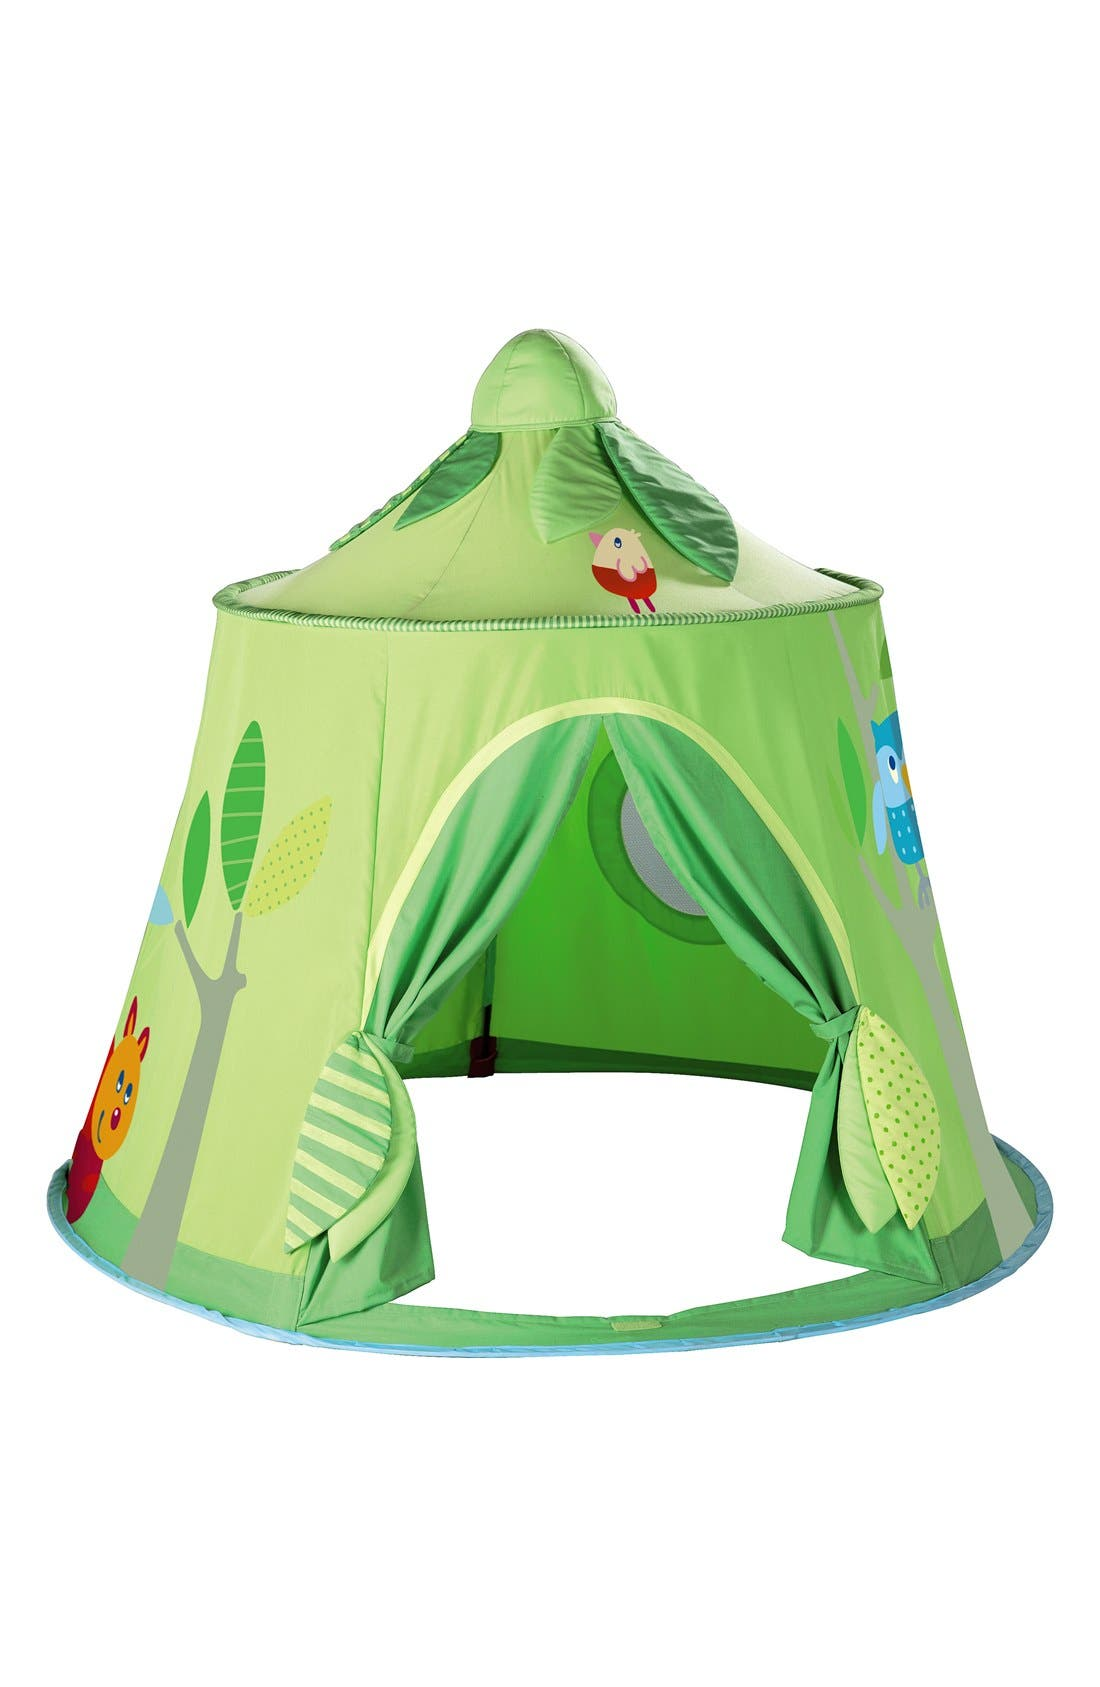 'Magic Forest' Play Tent,                         Main,                         color, 300